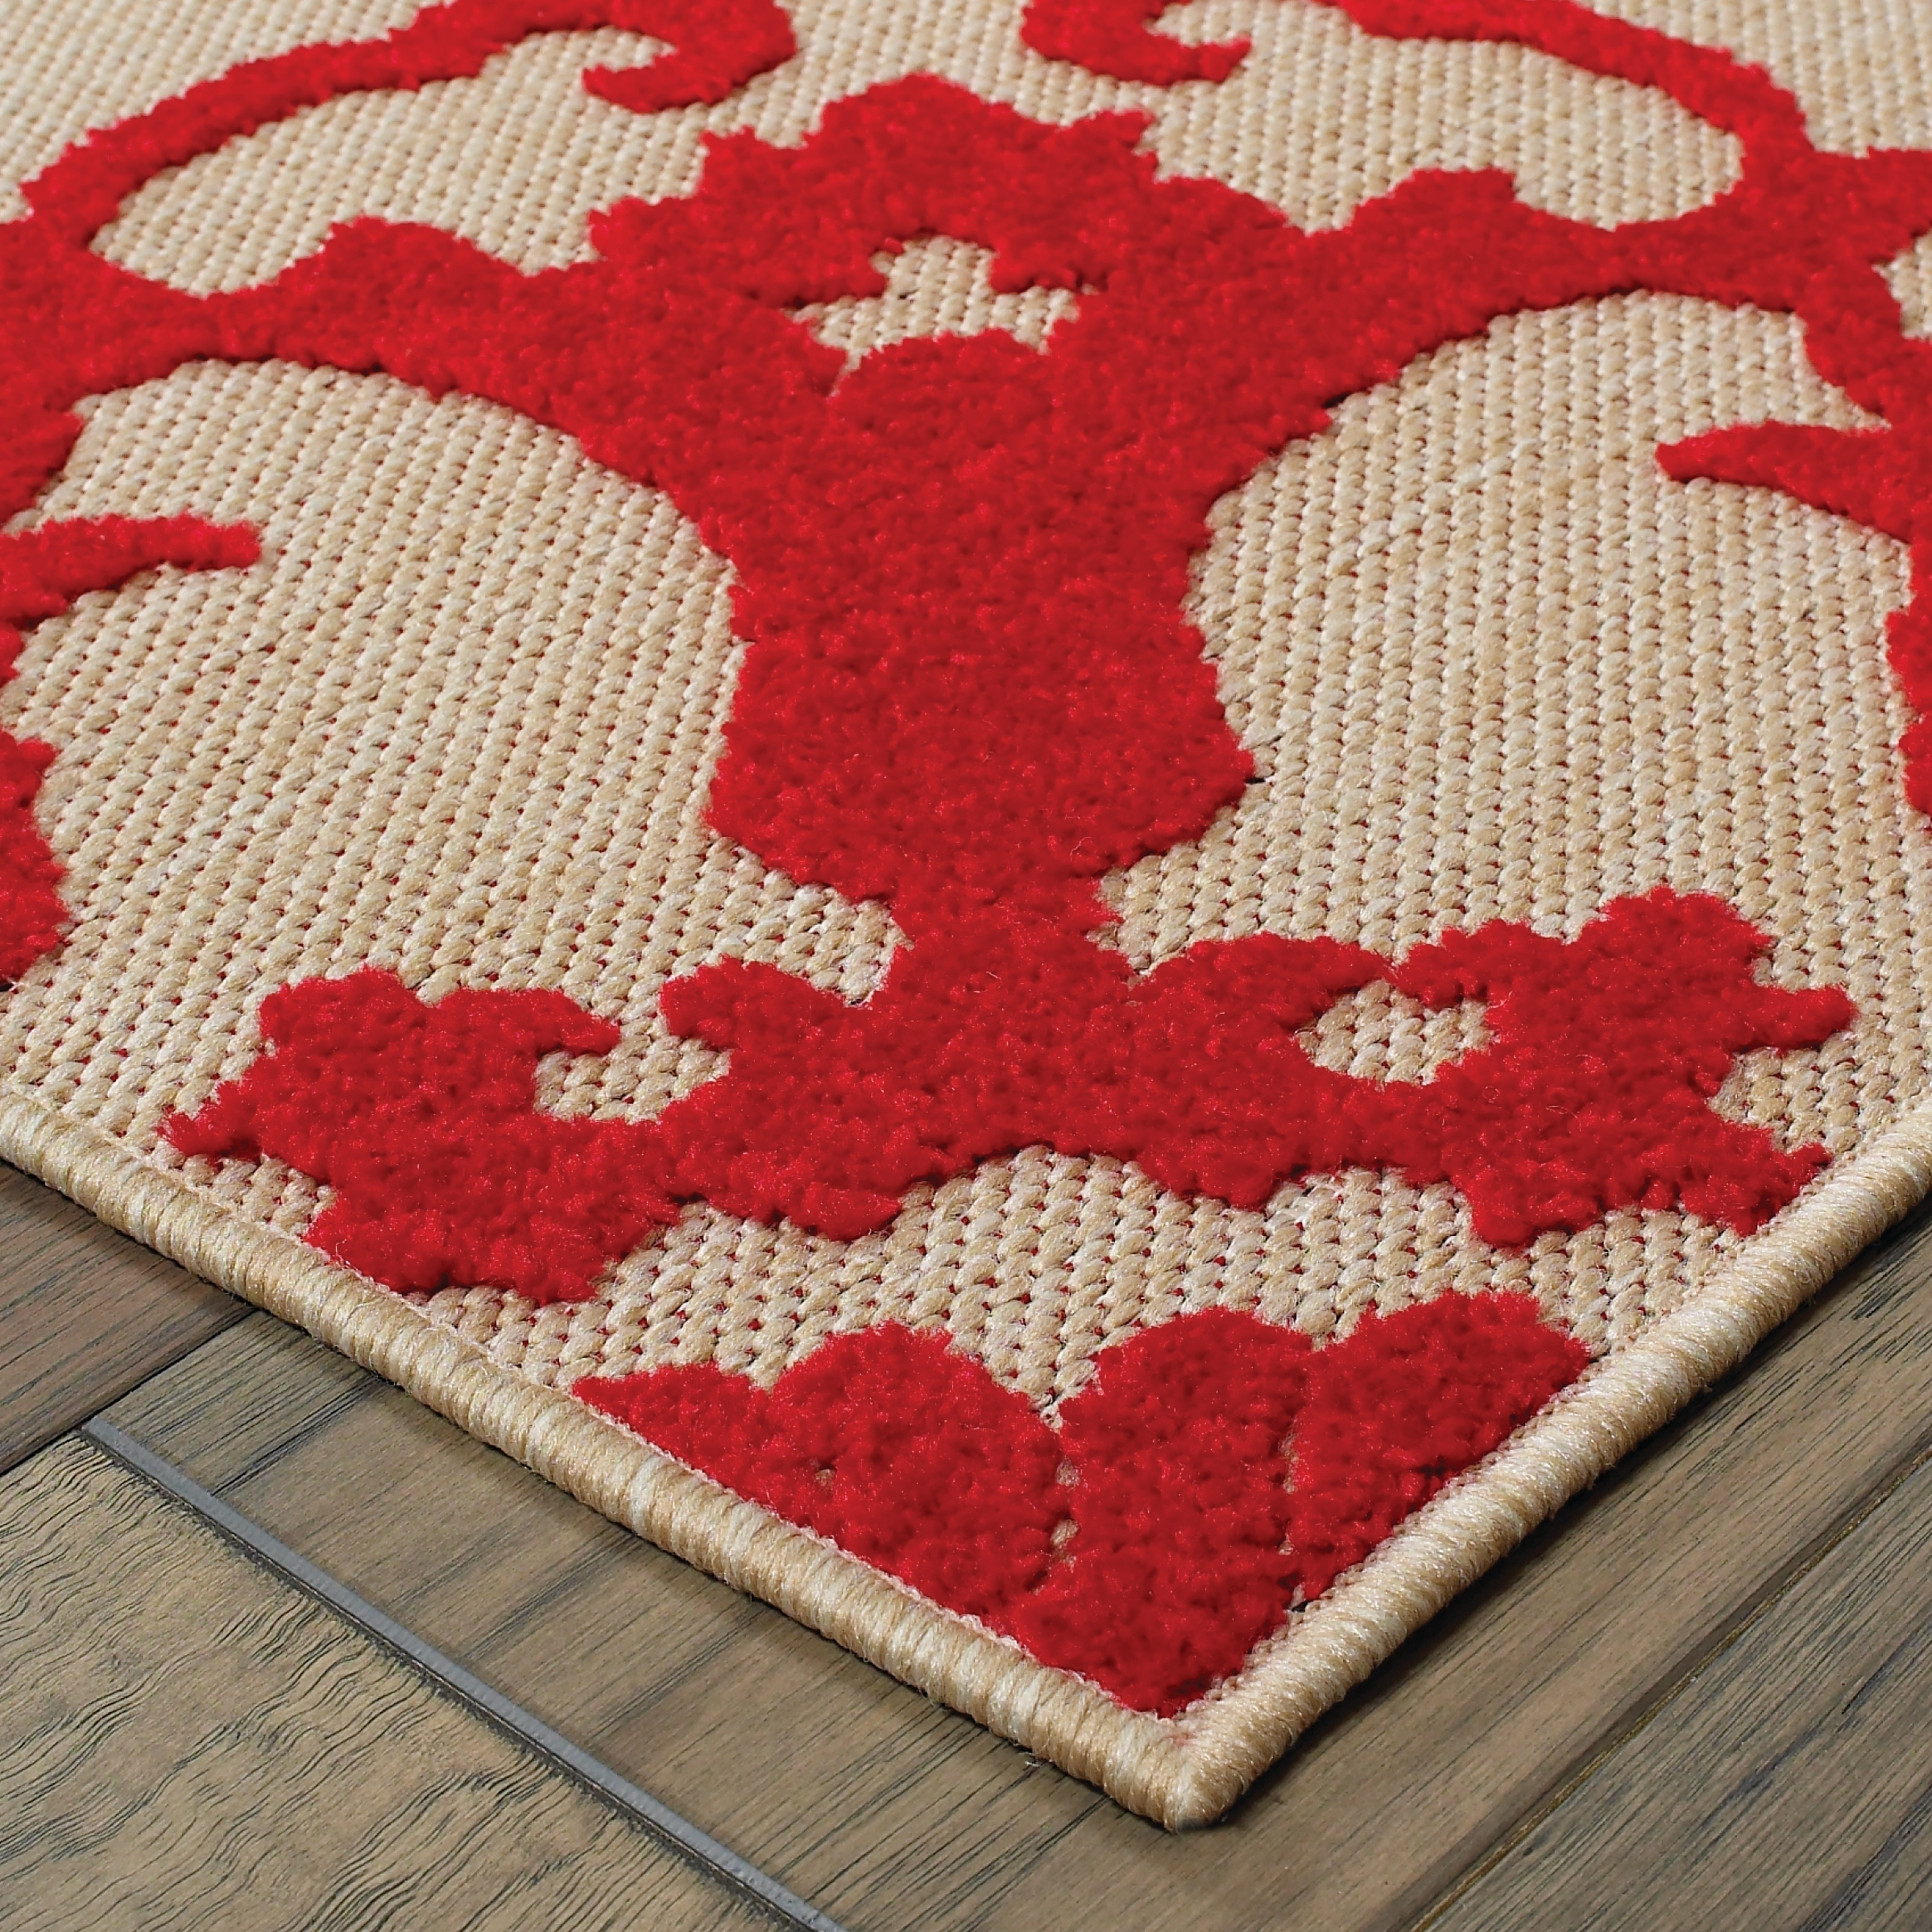 Style Haven Mixed Pile Floral Medallion Sand Red Indoor Outdoor Rug 2 3 X 7 6 Runner